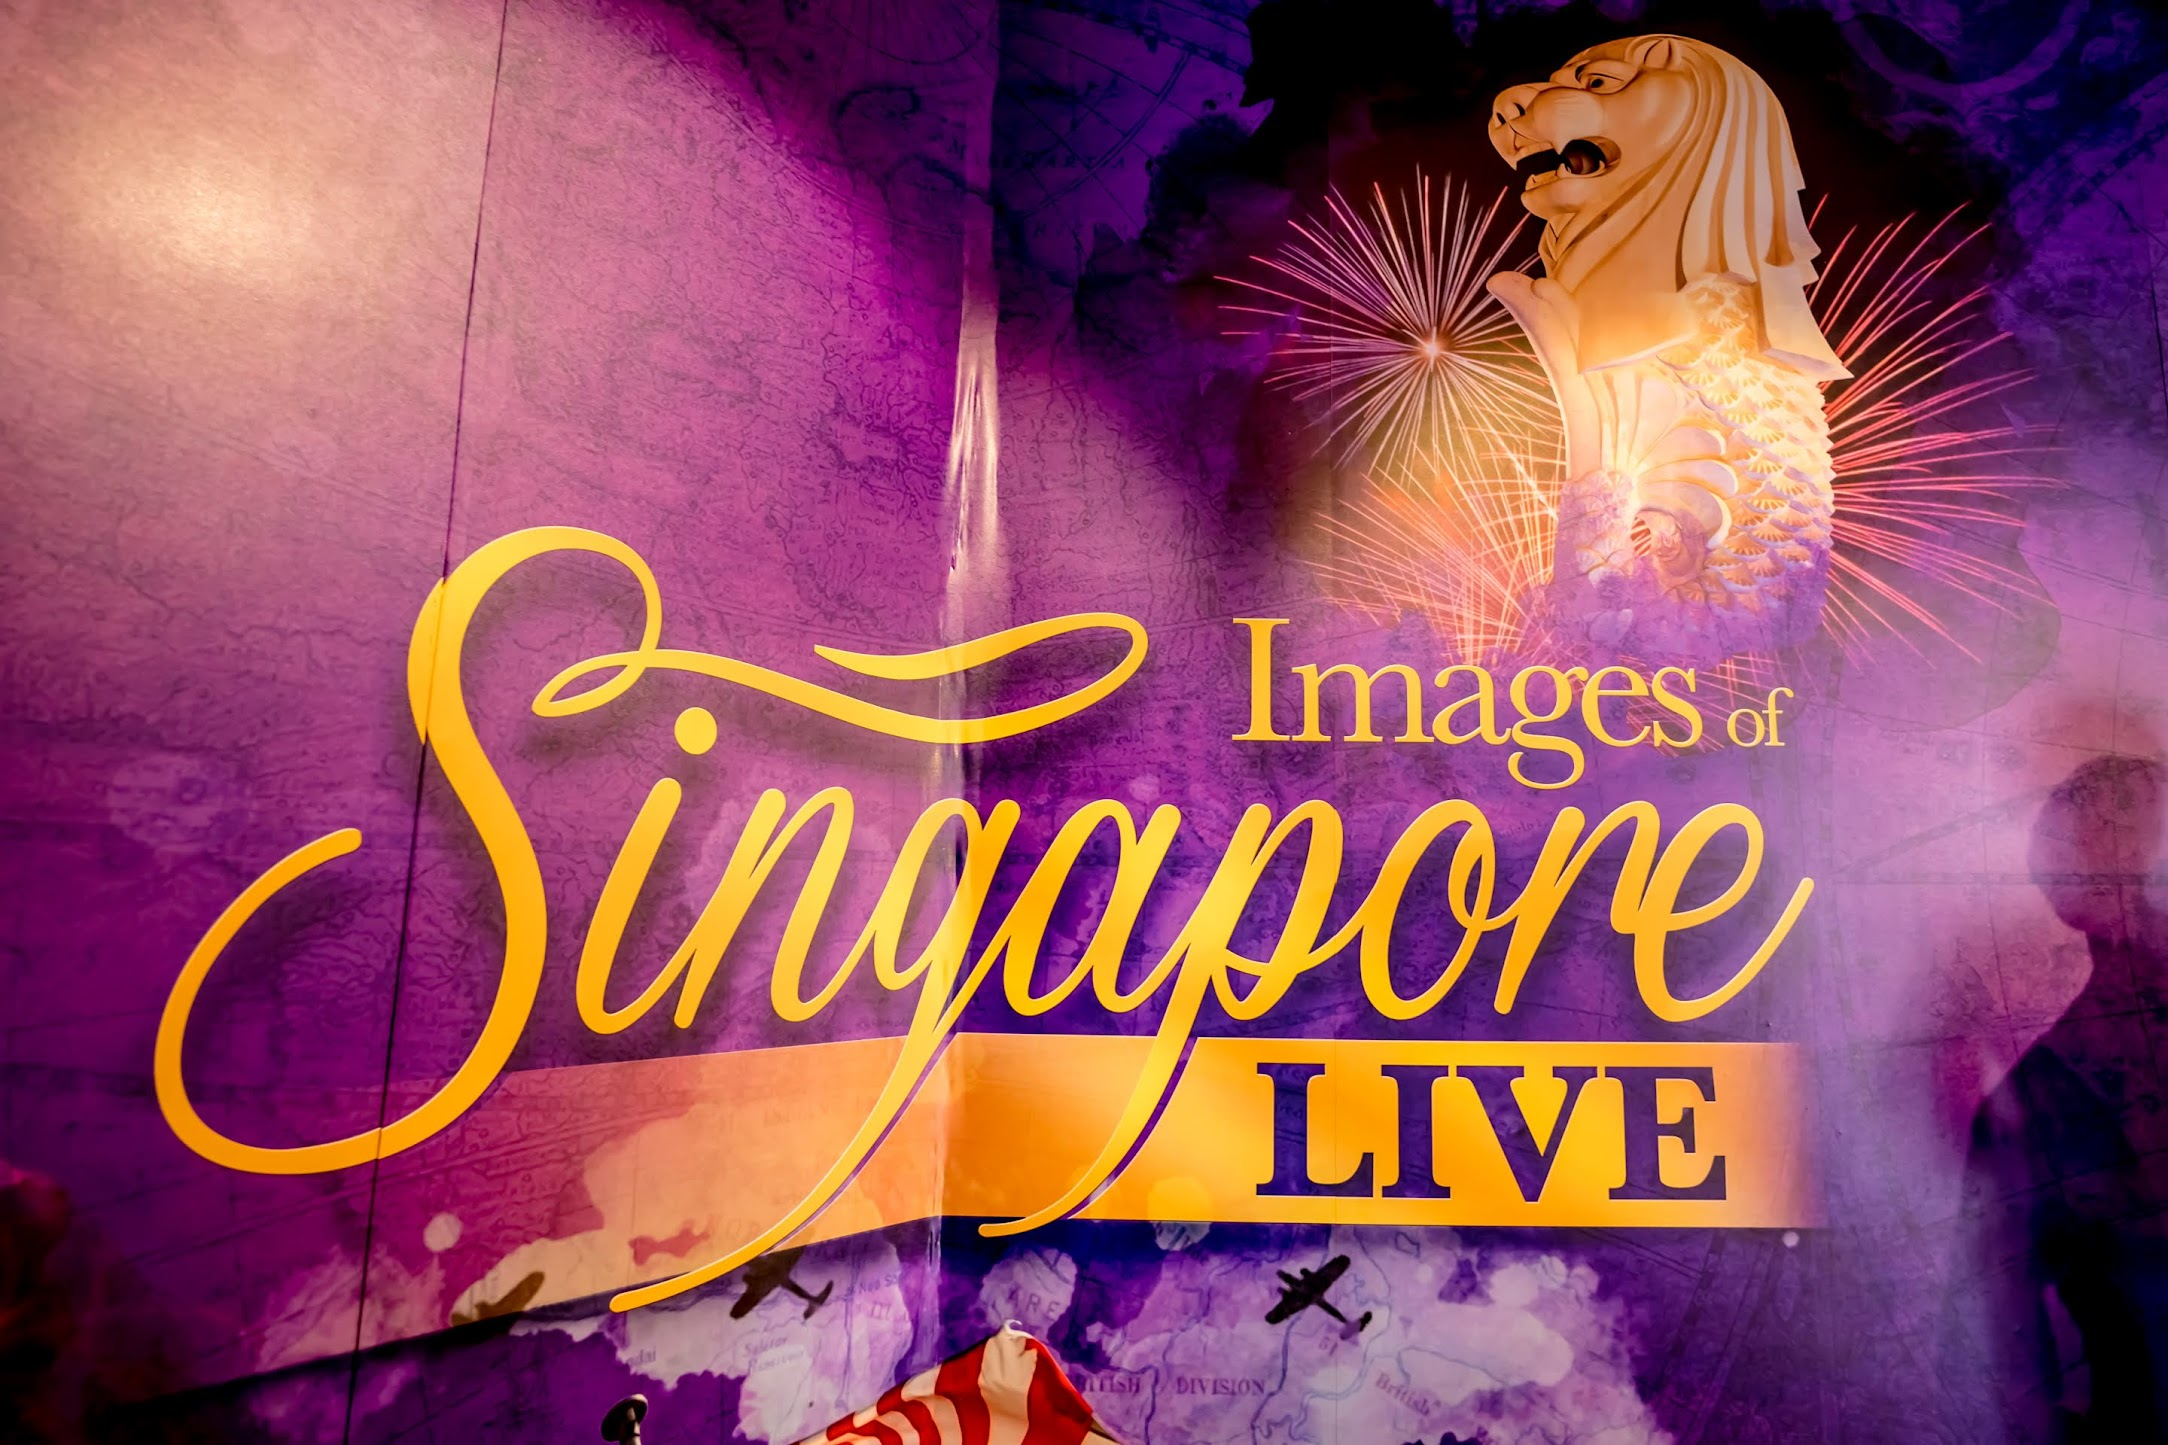 Singapore Sentosa Island Madame Tussauds Singapore Images of Singapore LIVE